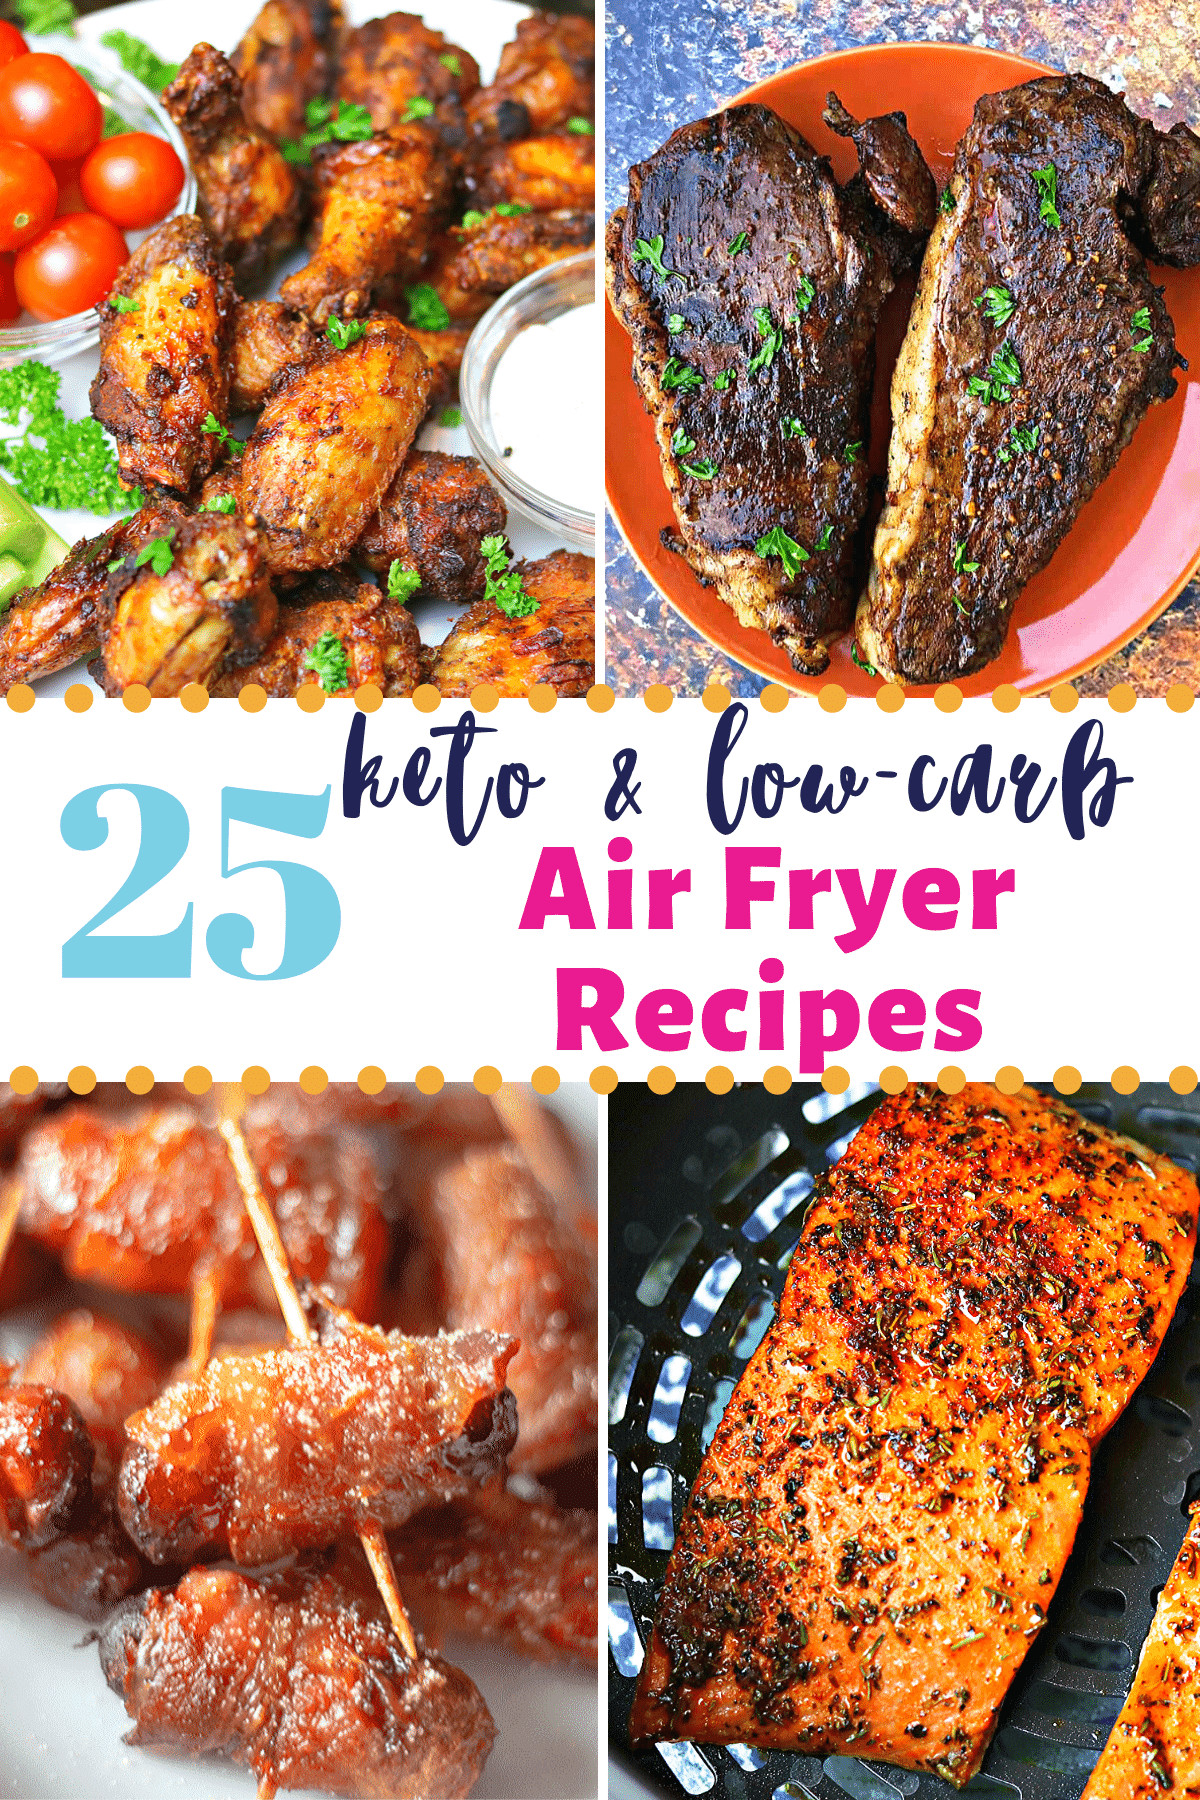 Air Fryer Keto Snacks  25 Easy Low carb & Keto Air Fryer Recipes for Every Meal